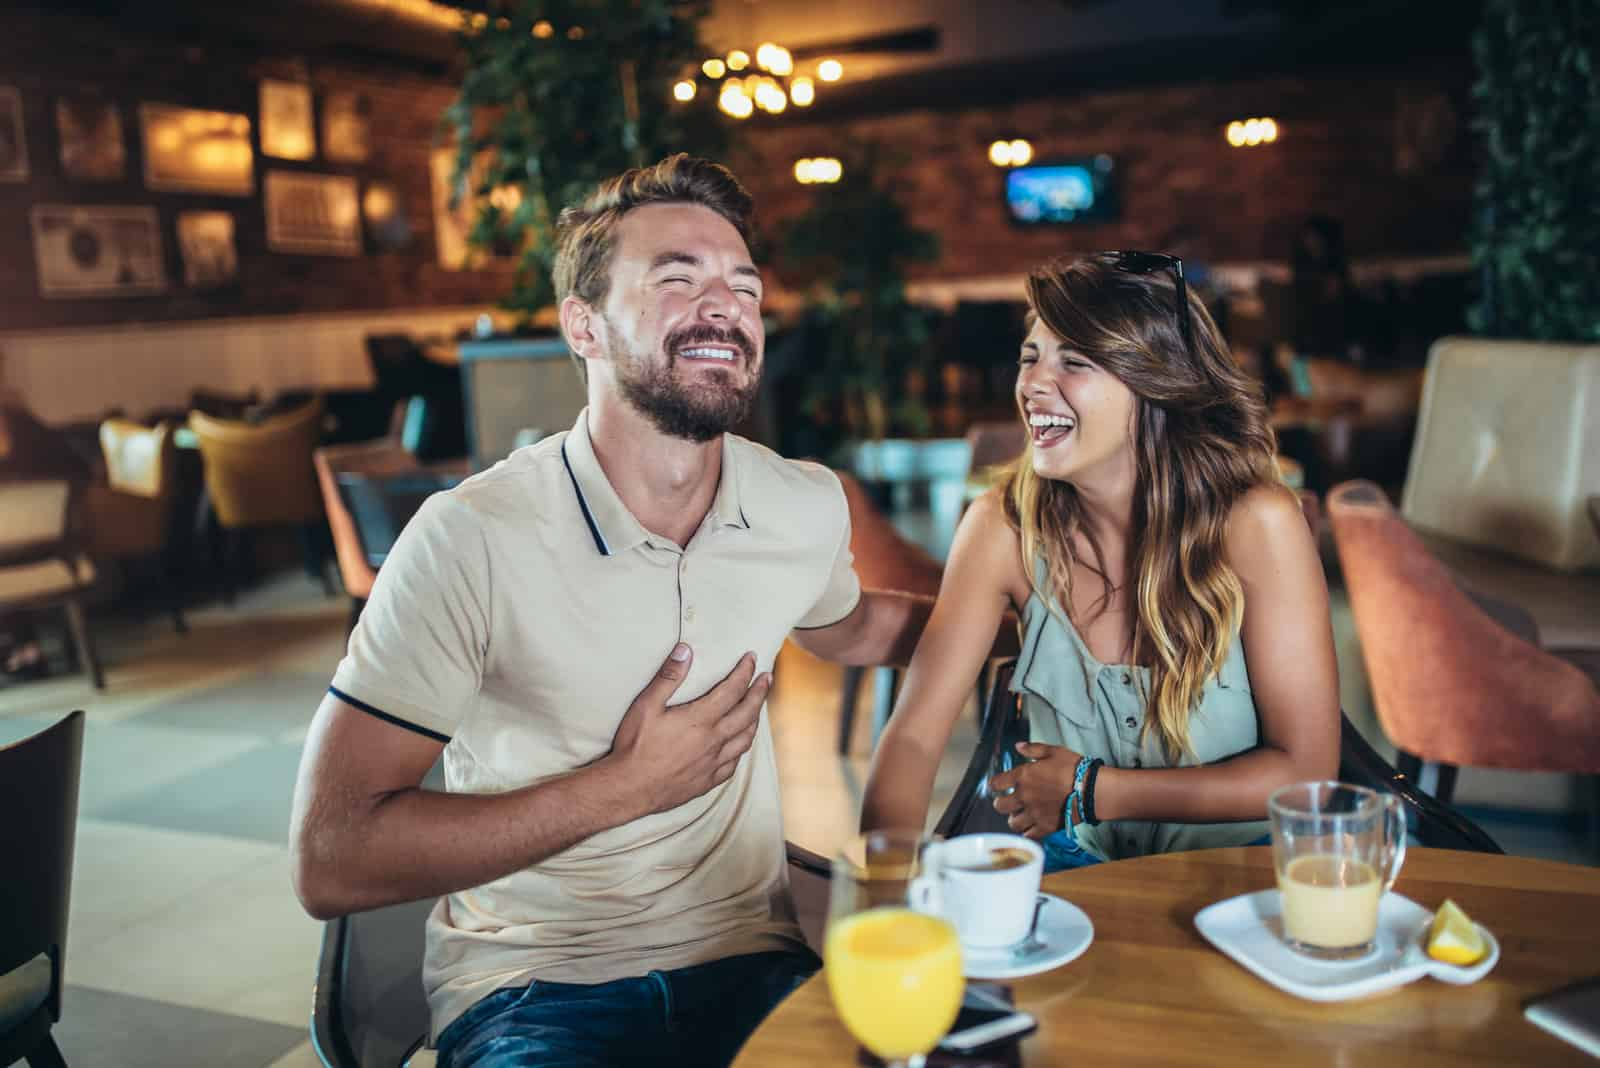 a loving couple in a cafe laughing